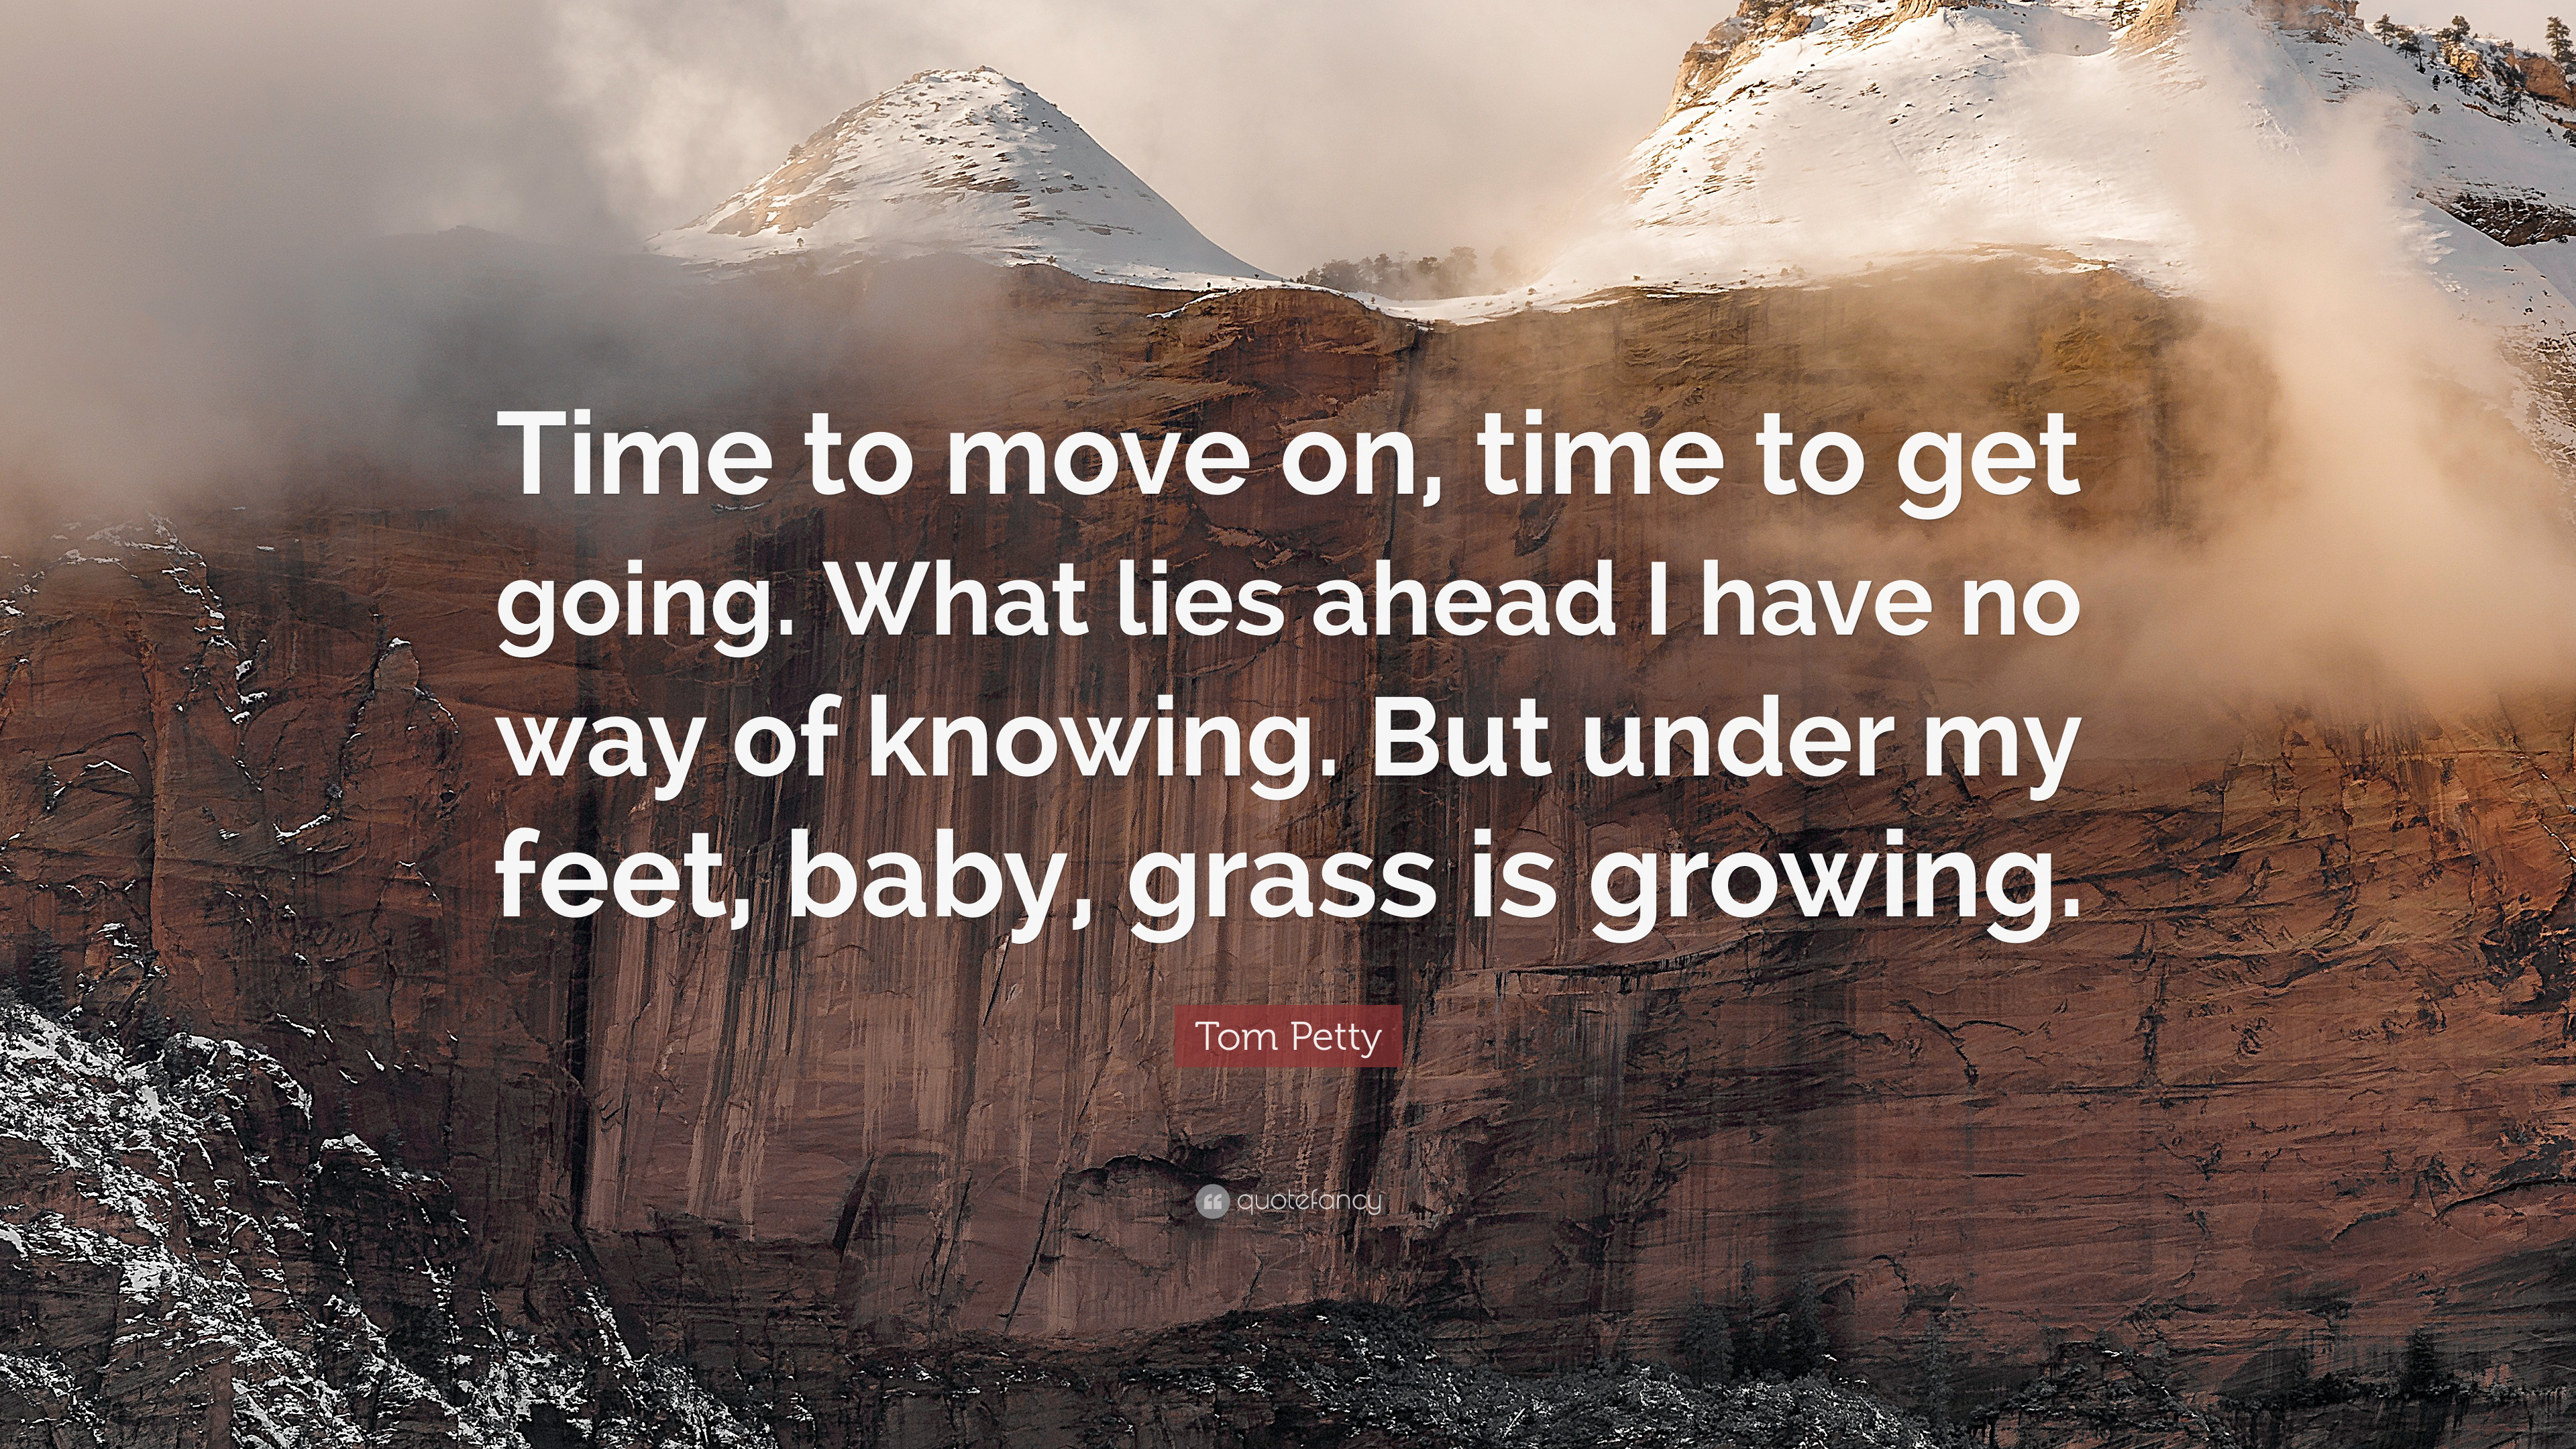 Time To Move On Quotes | Tom Petty Quote Time To Move On Time To Get Going What Lies